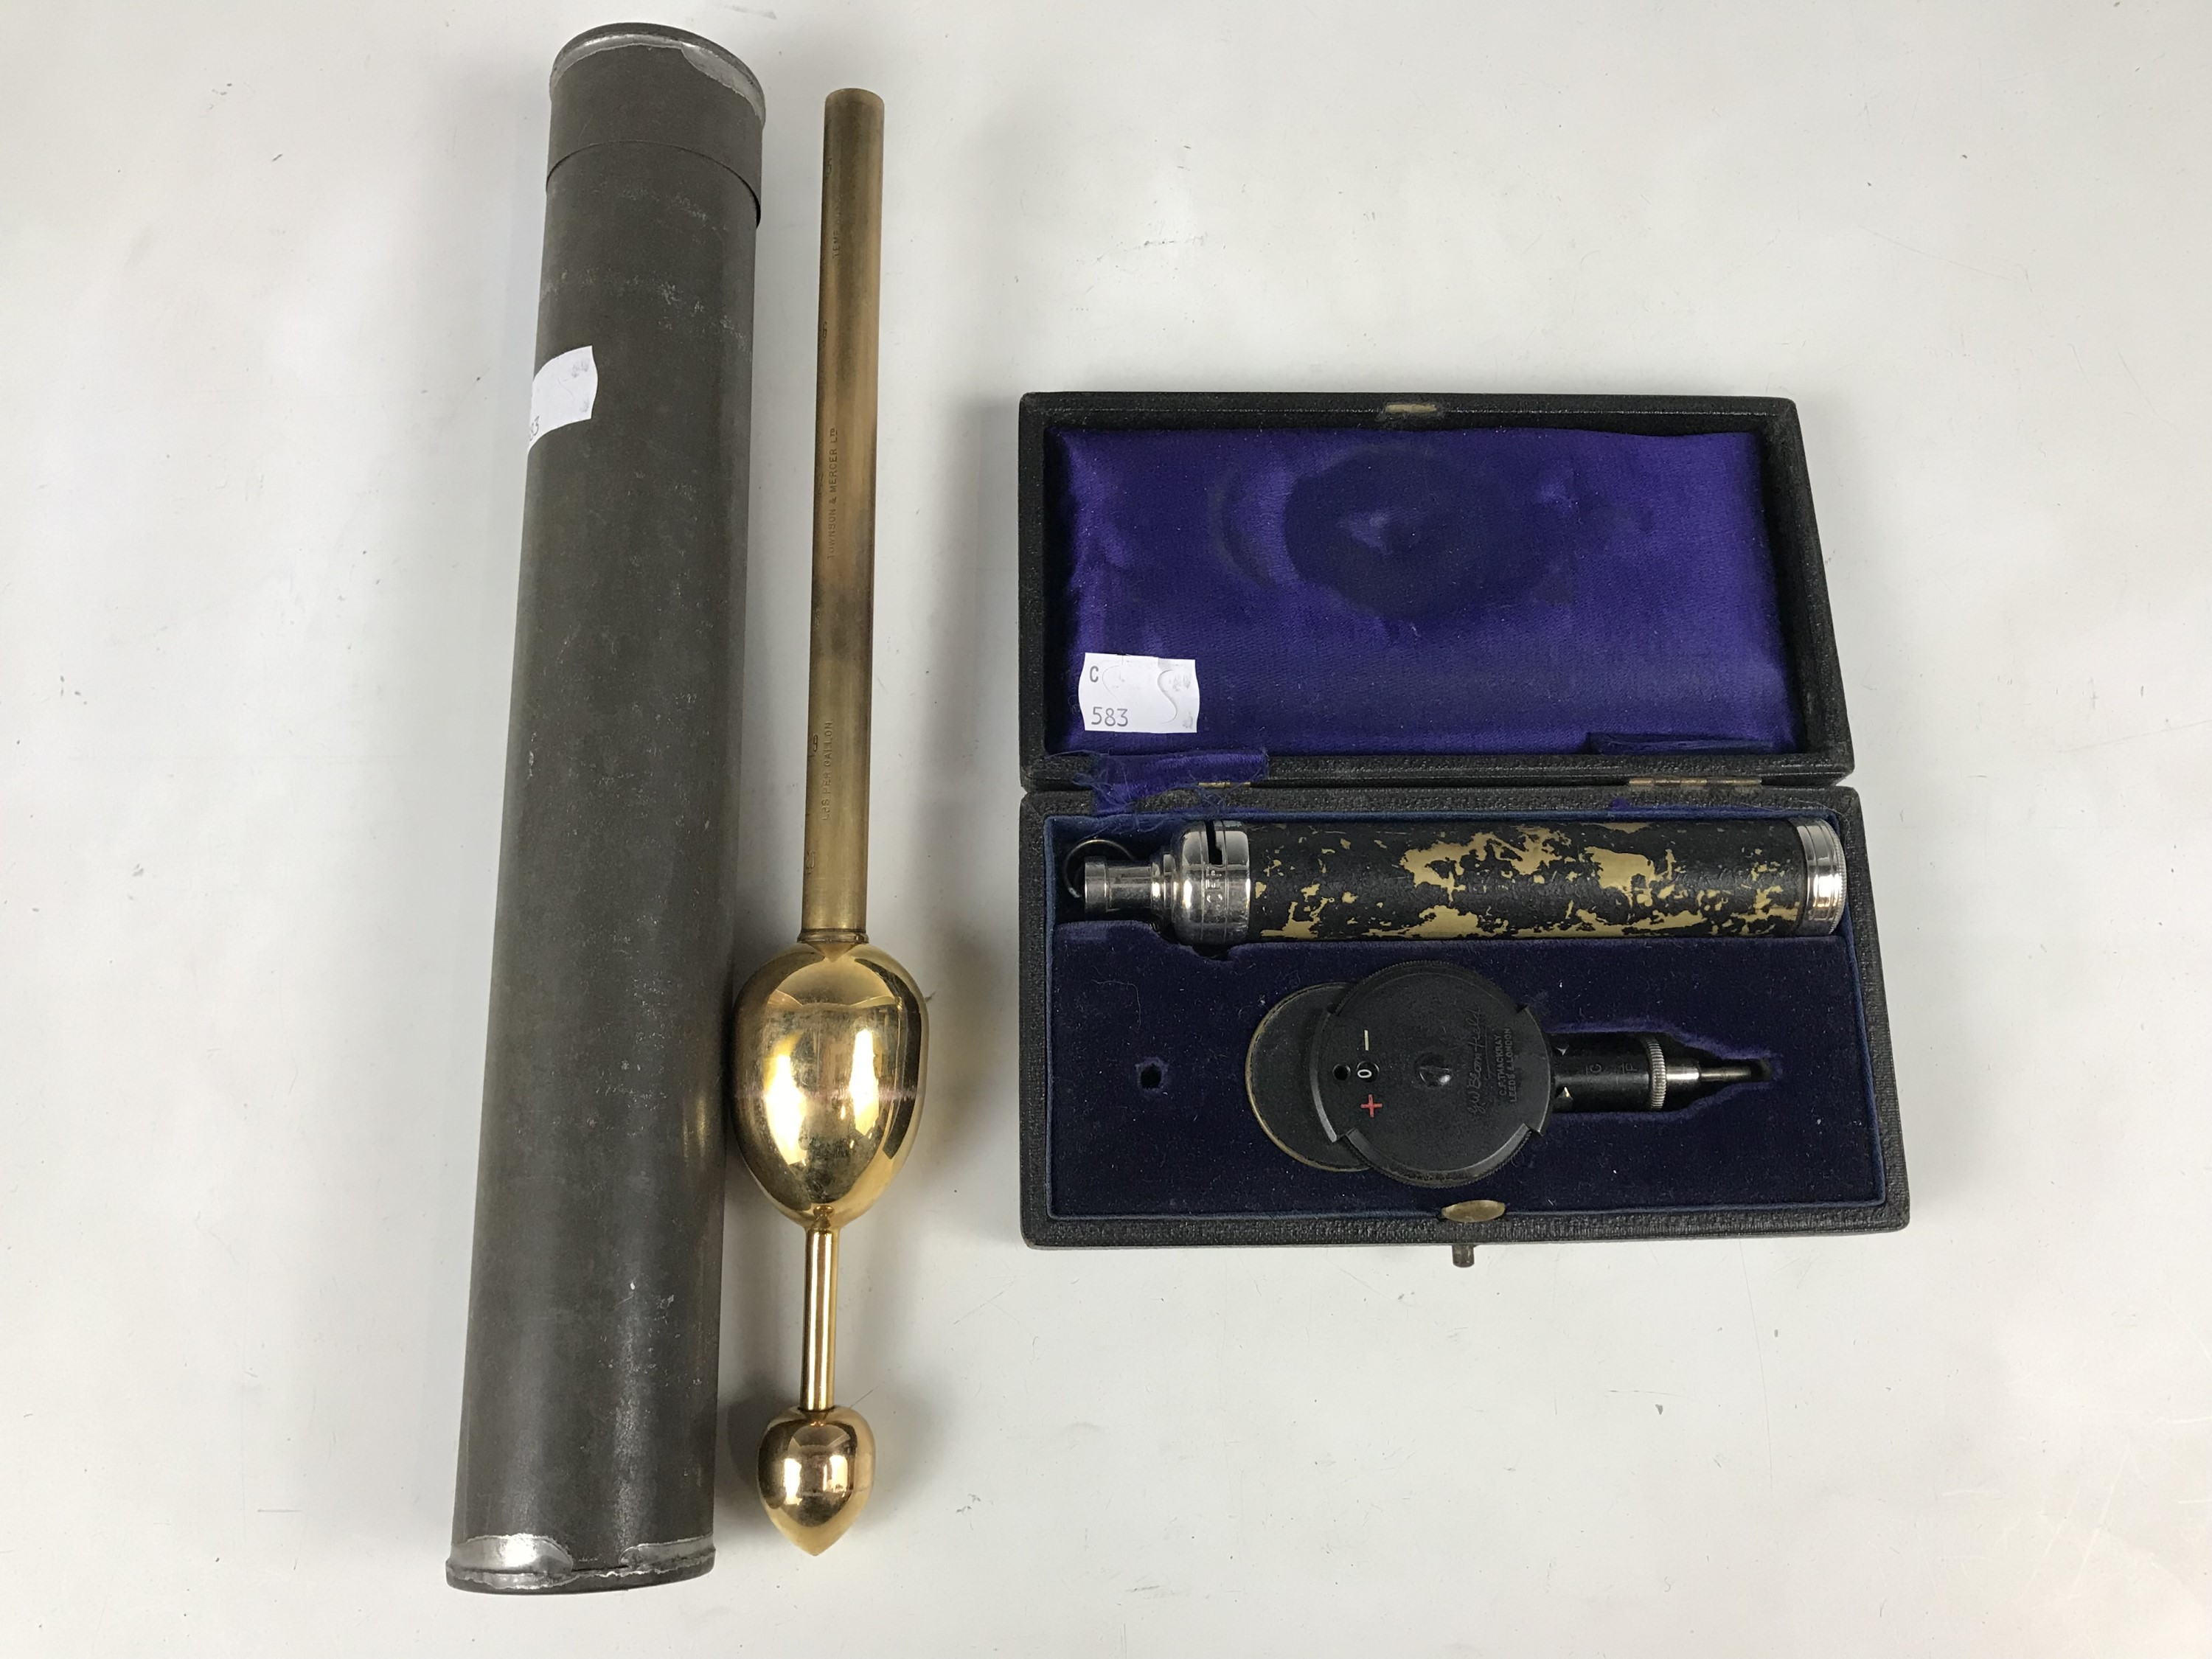 Lot 48 - A Townson & Mercer brass hydrometer together with an ophthalmoscope by C. F. Thackray of Leeds and